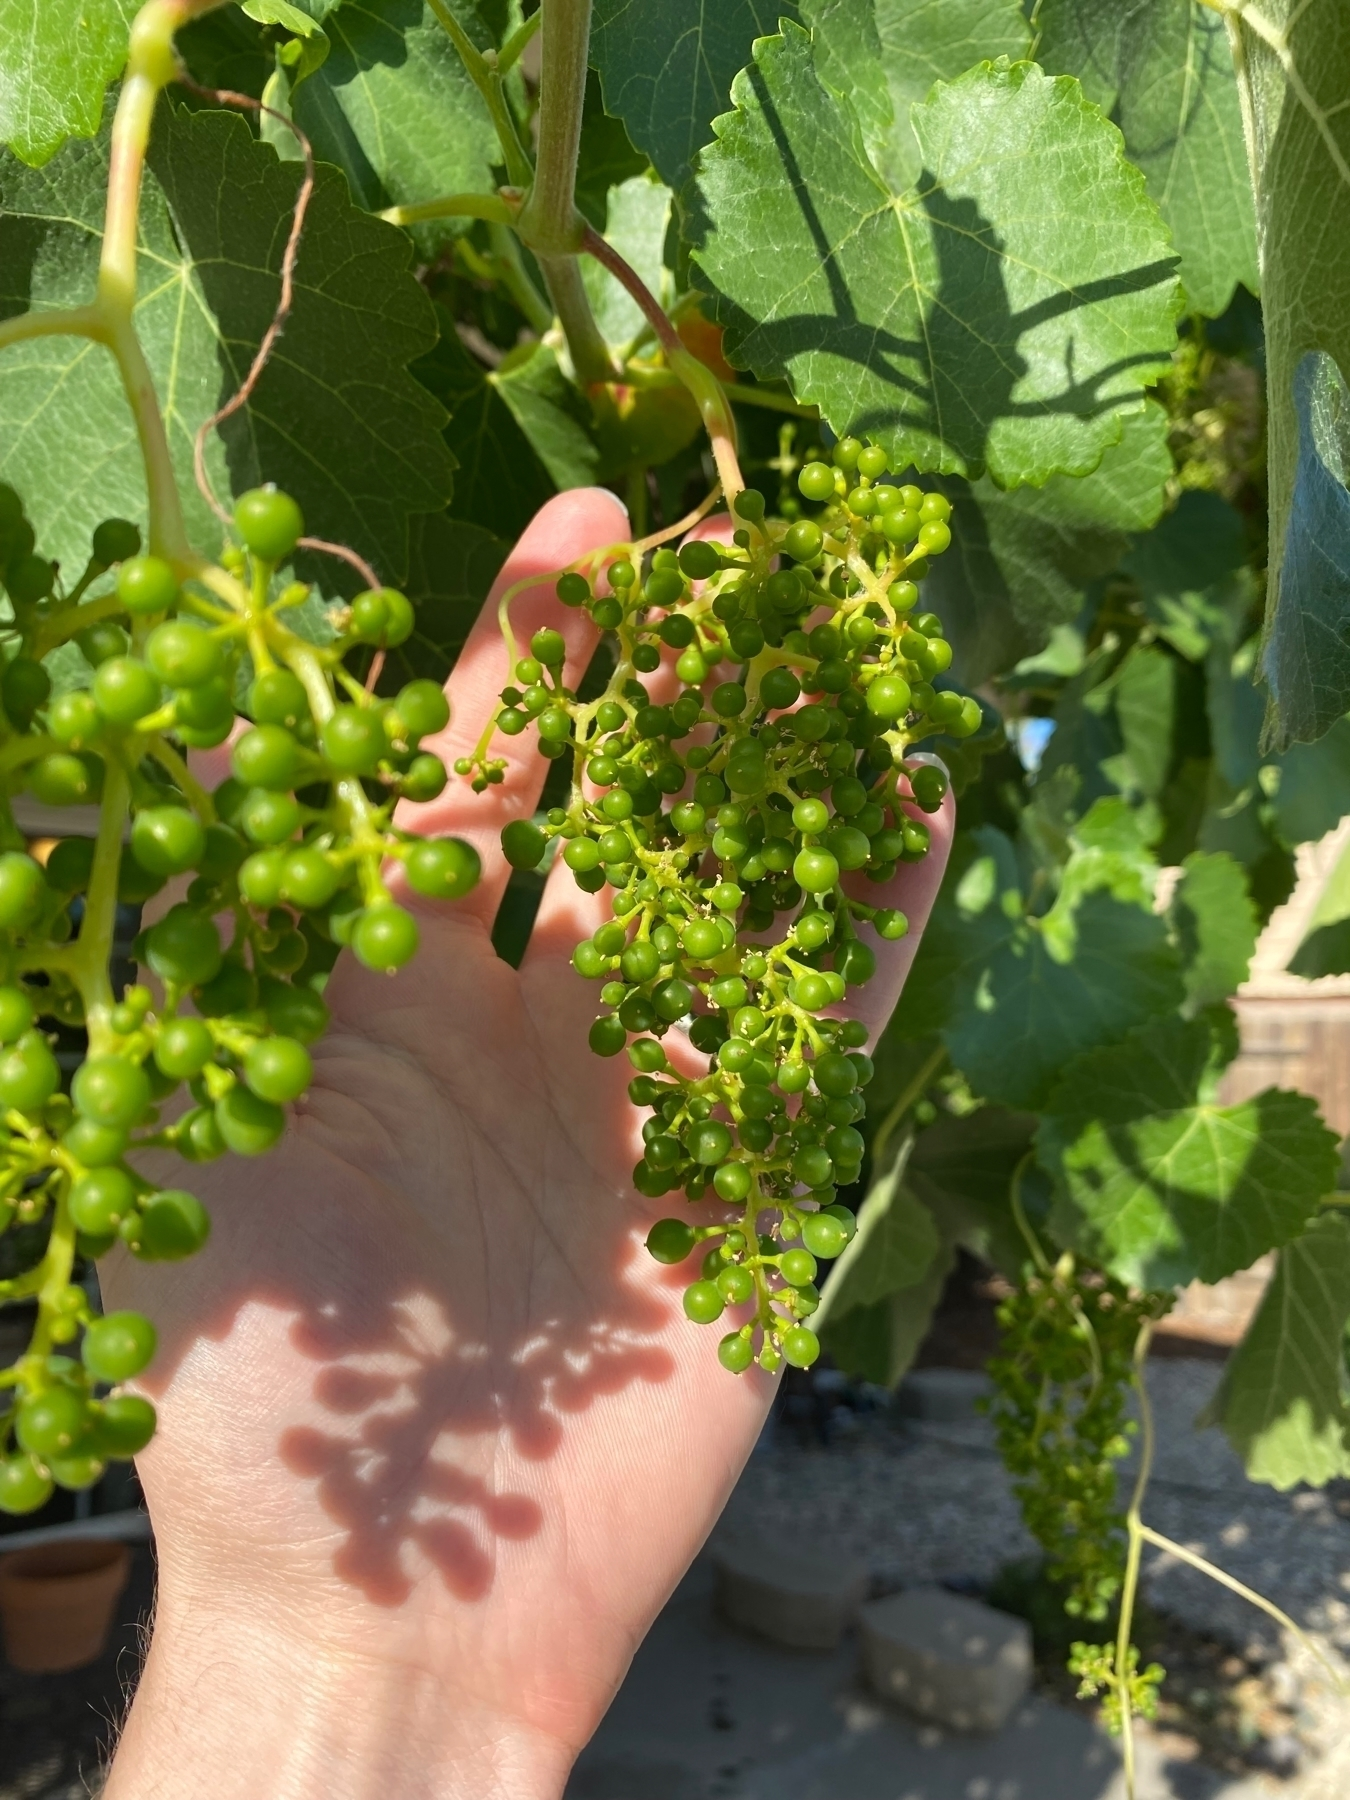 a bunch of green, unrobe grapes hanging in the sunshine